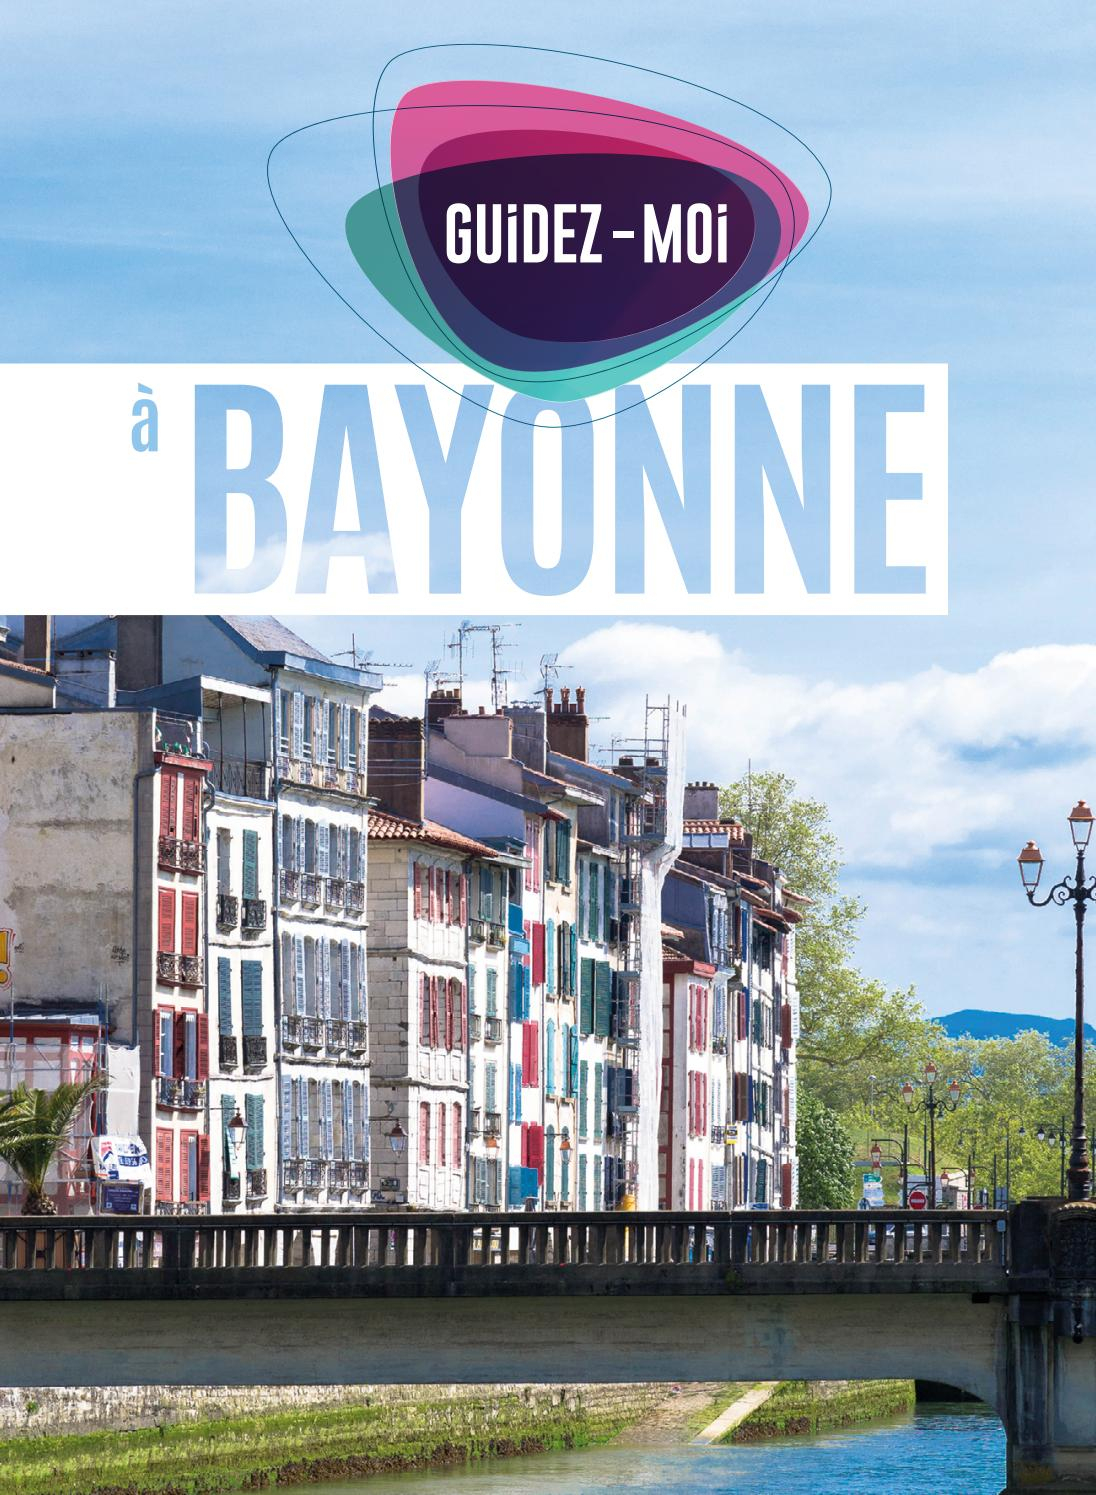 Guide Bayonne 2017 By Guidez-Moi - Issuu concernant Chambre Des Metiers Bayonne